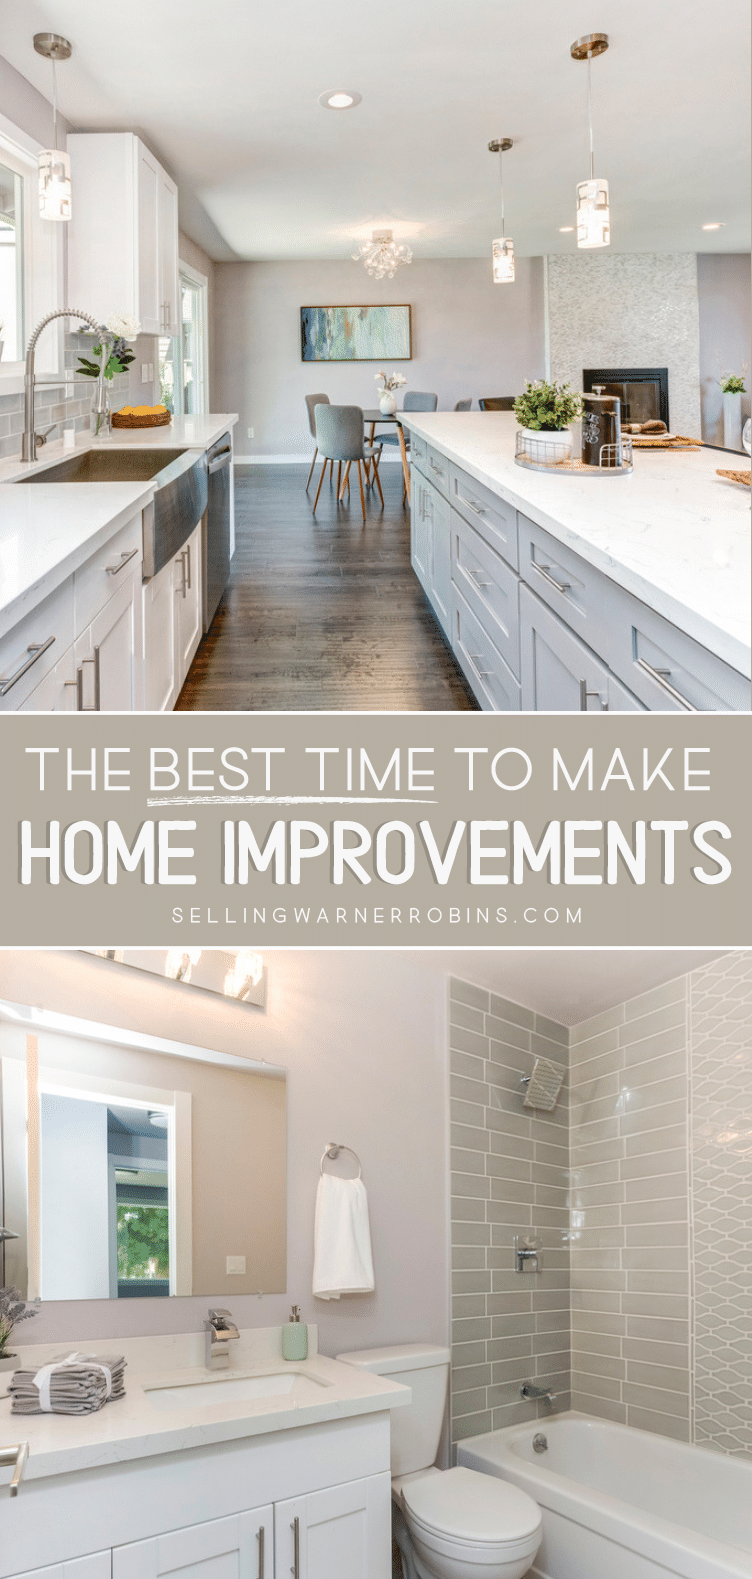 The Best Time to Make Home Improvements